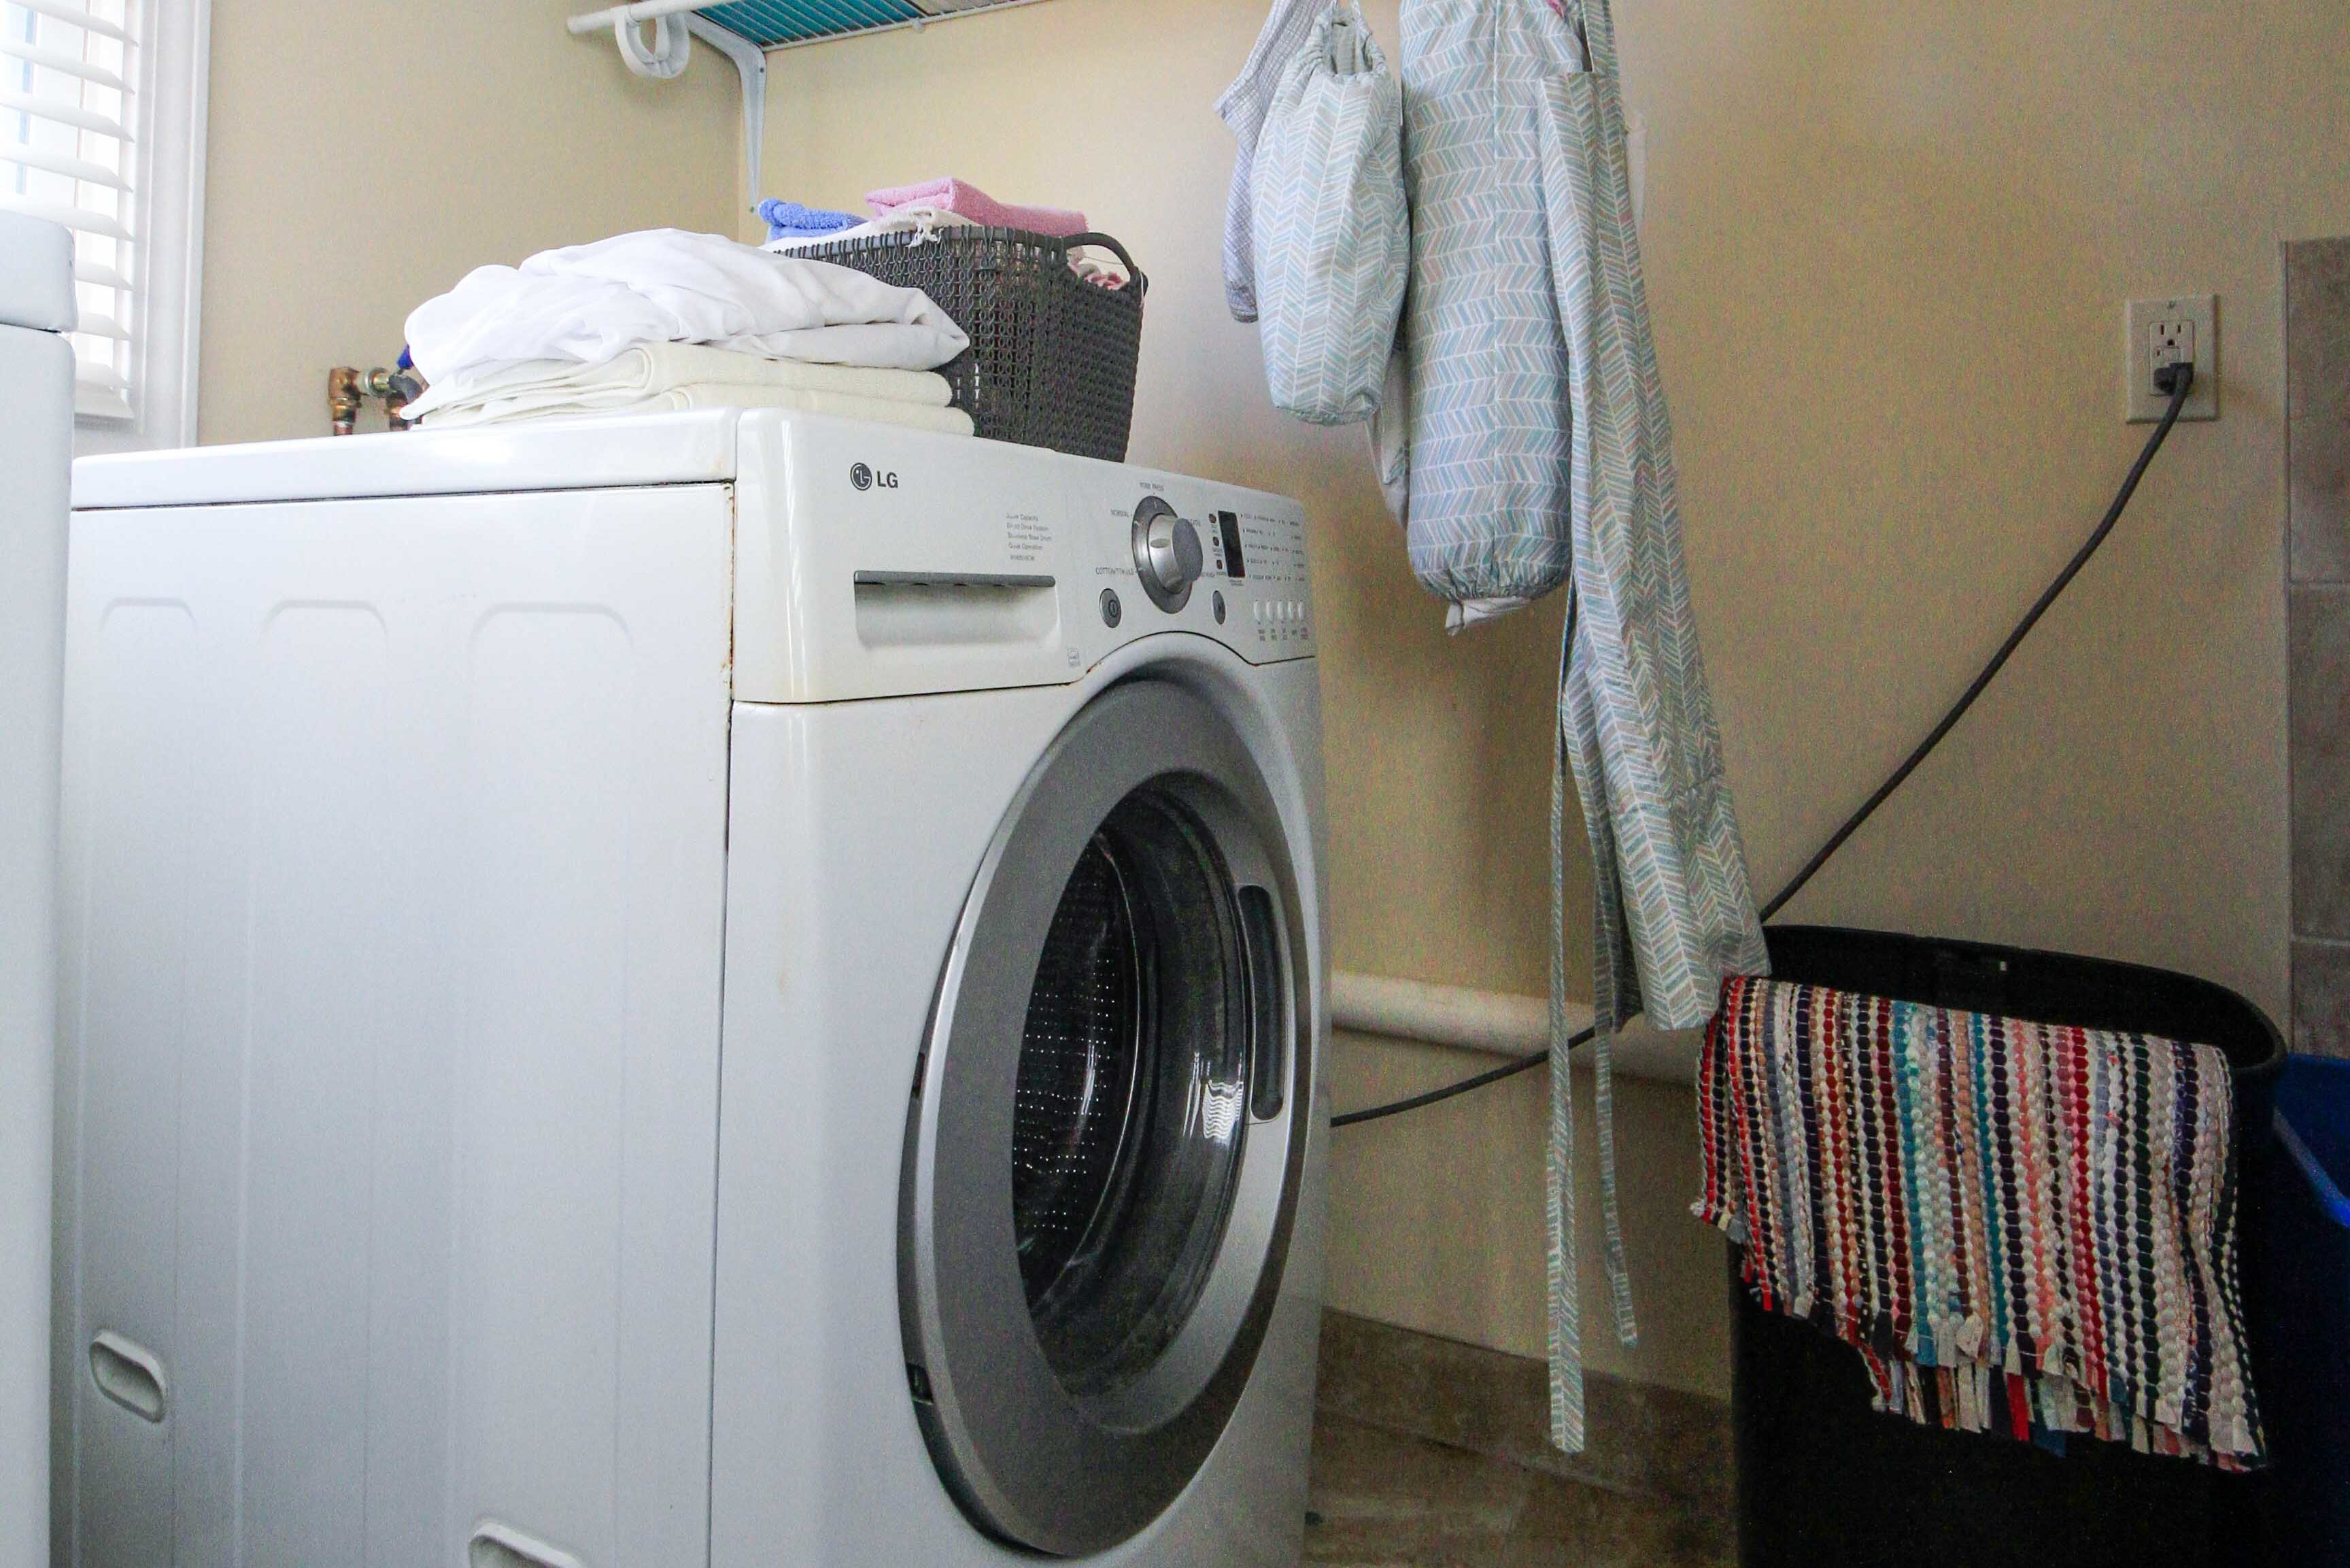 Laundry - Washer and Dryer